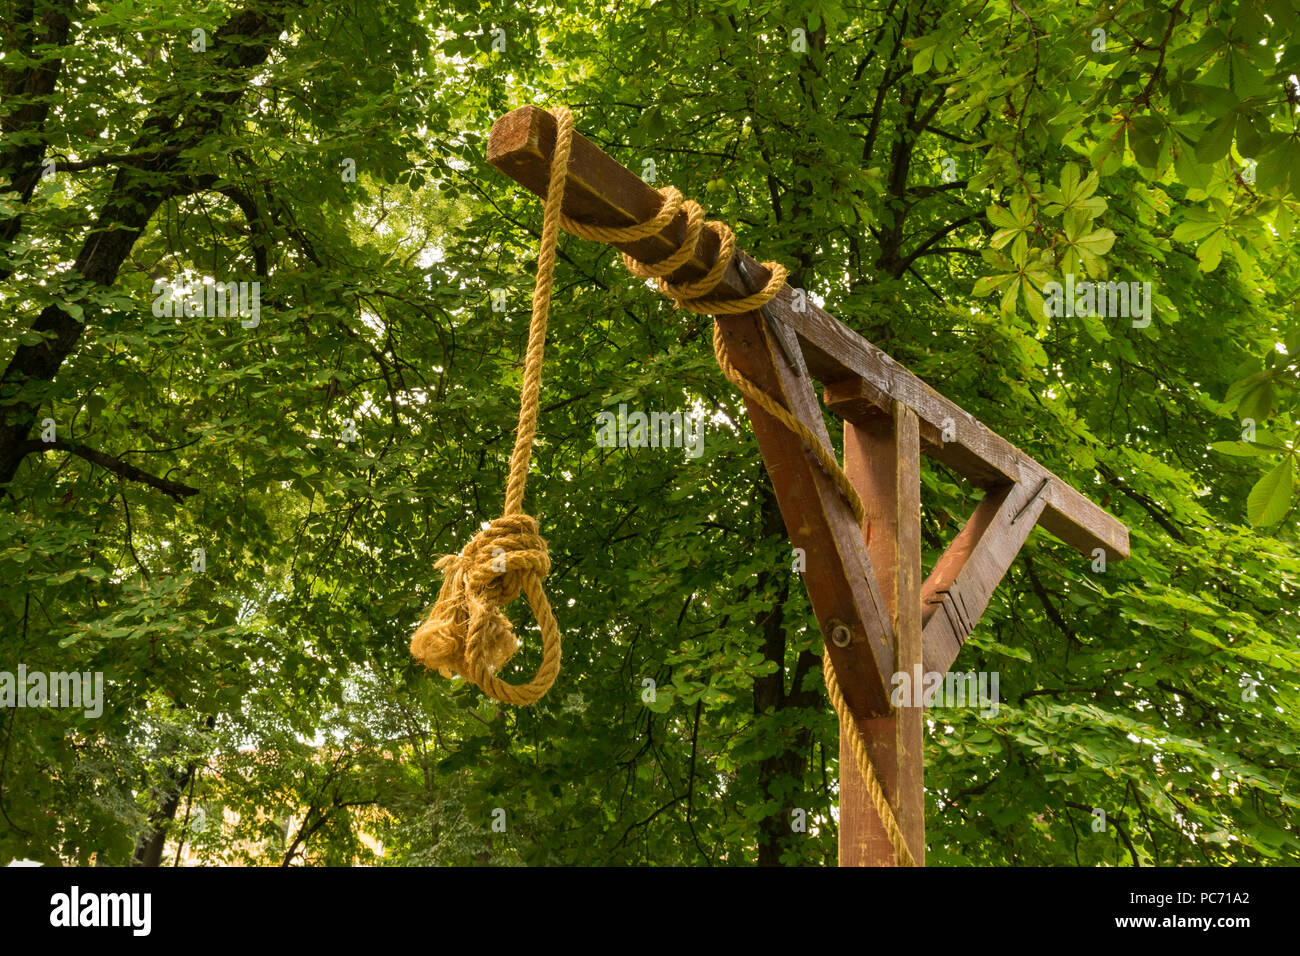 No person, medieval gallows, gibbet, halter with a noose and green vegetation background - Stock Image